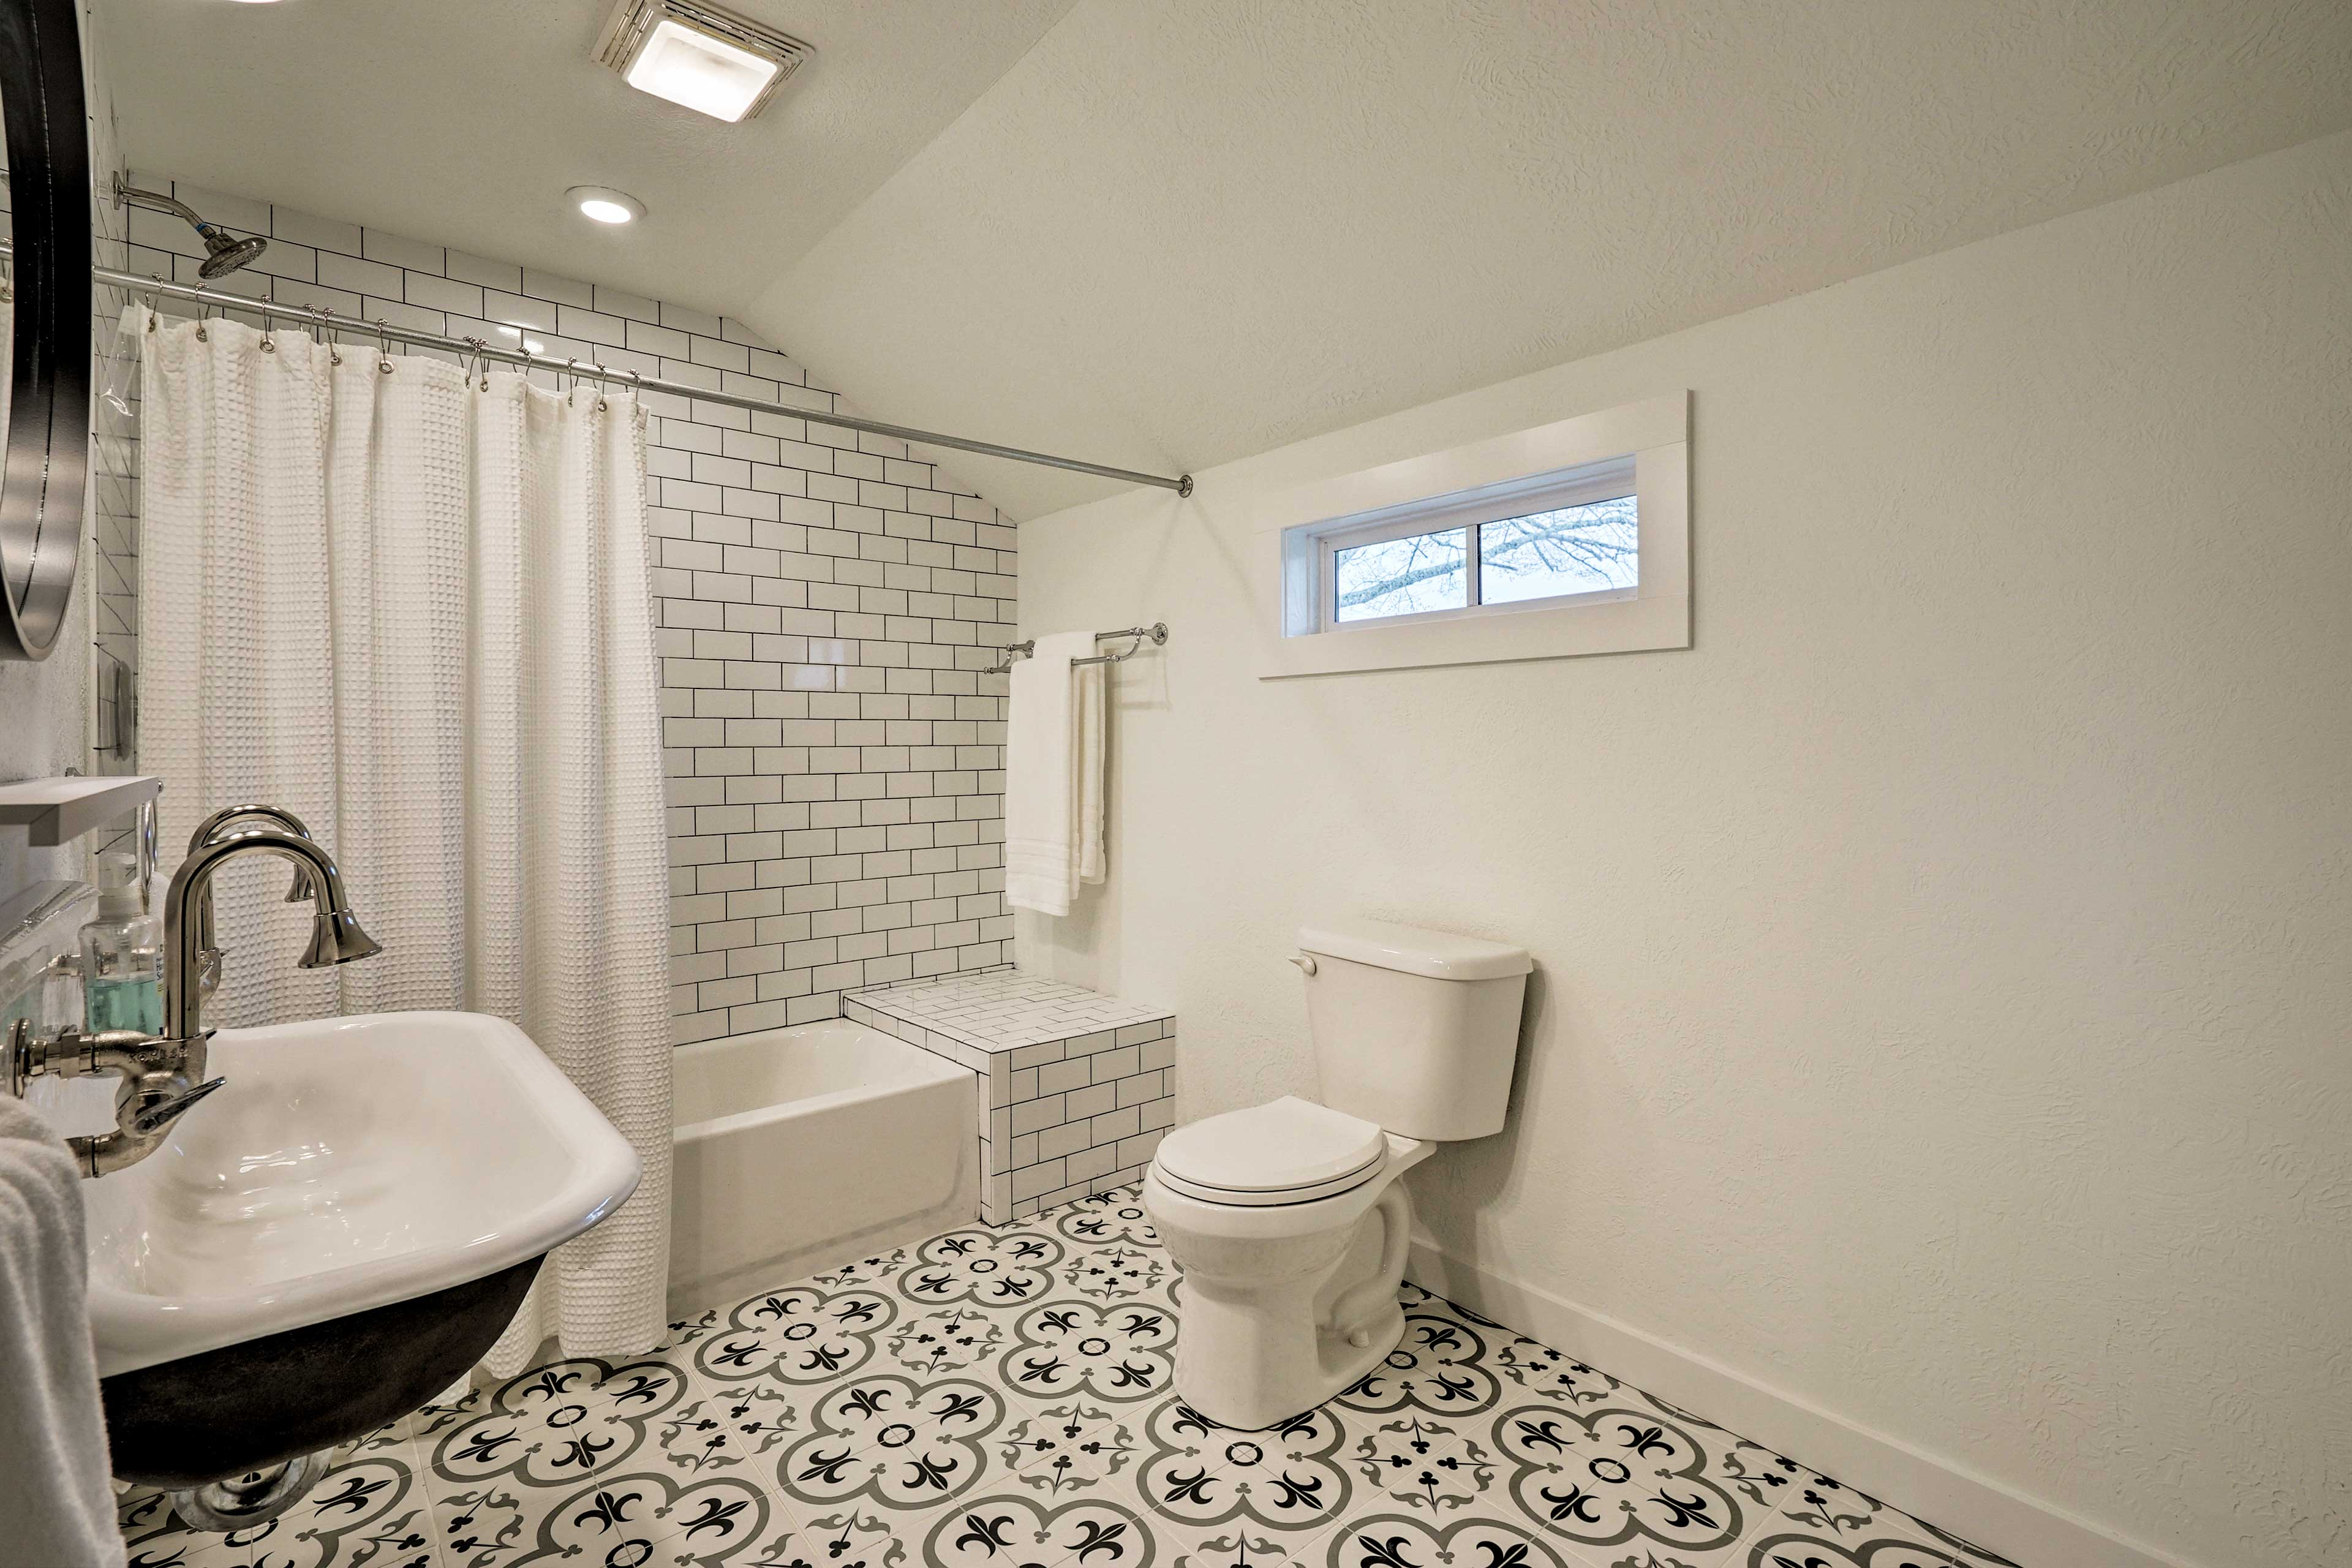 Each bathroom is completely unique and up-to-date!